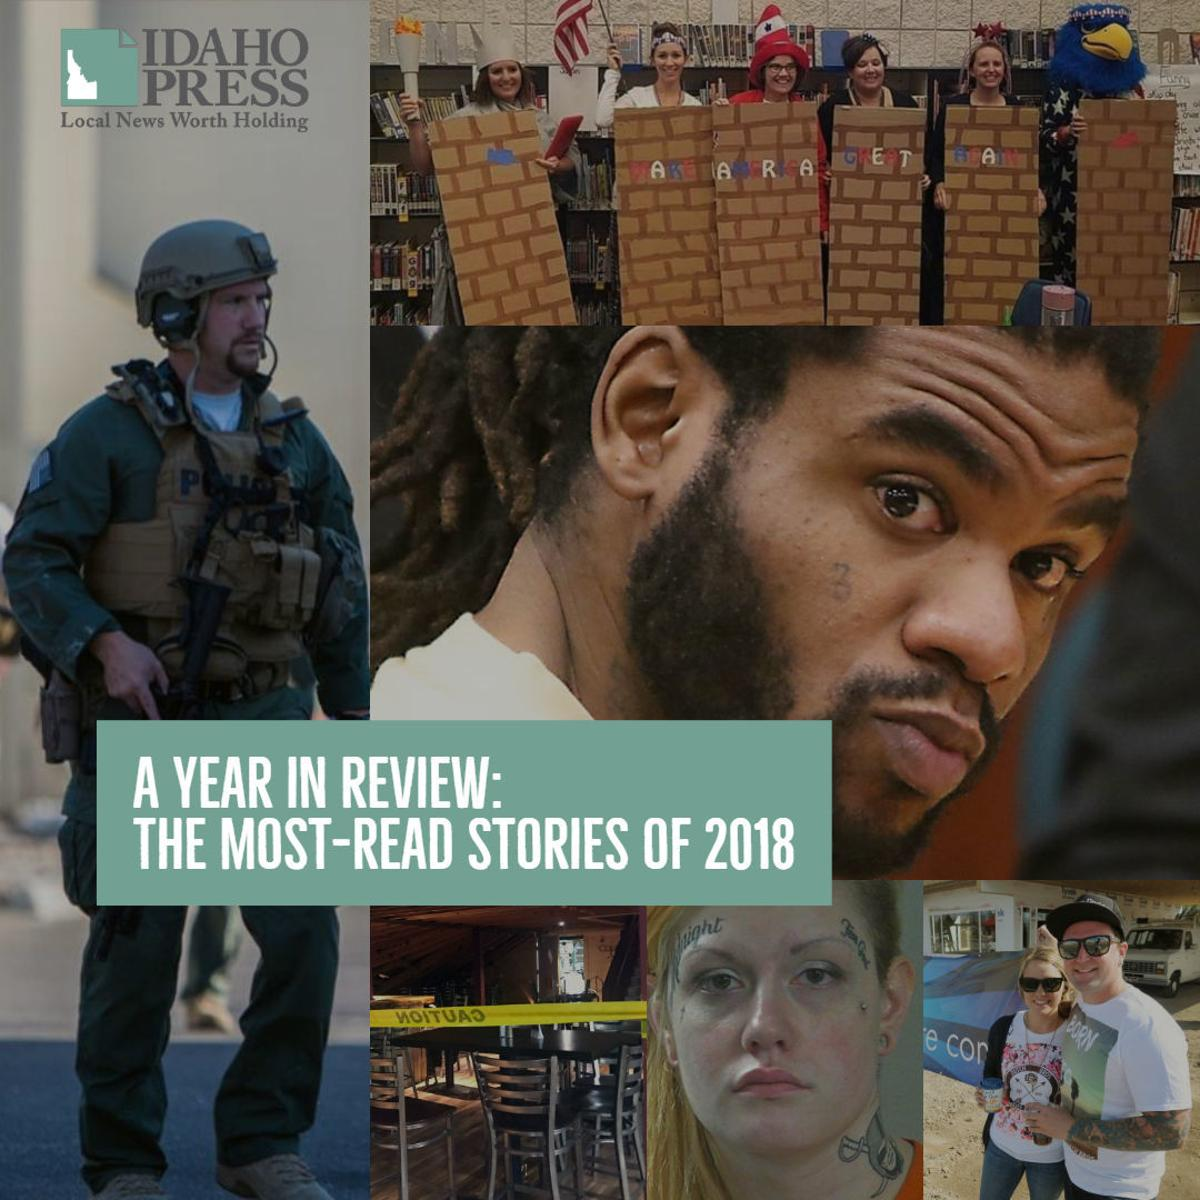 A year in review: Our top stories of 2018 | Local News